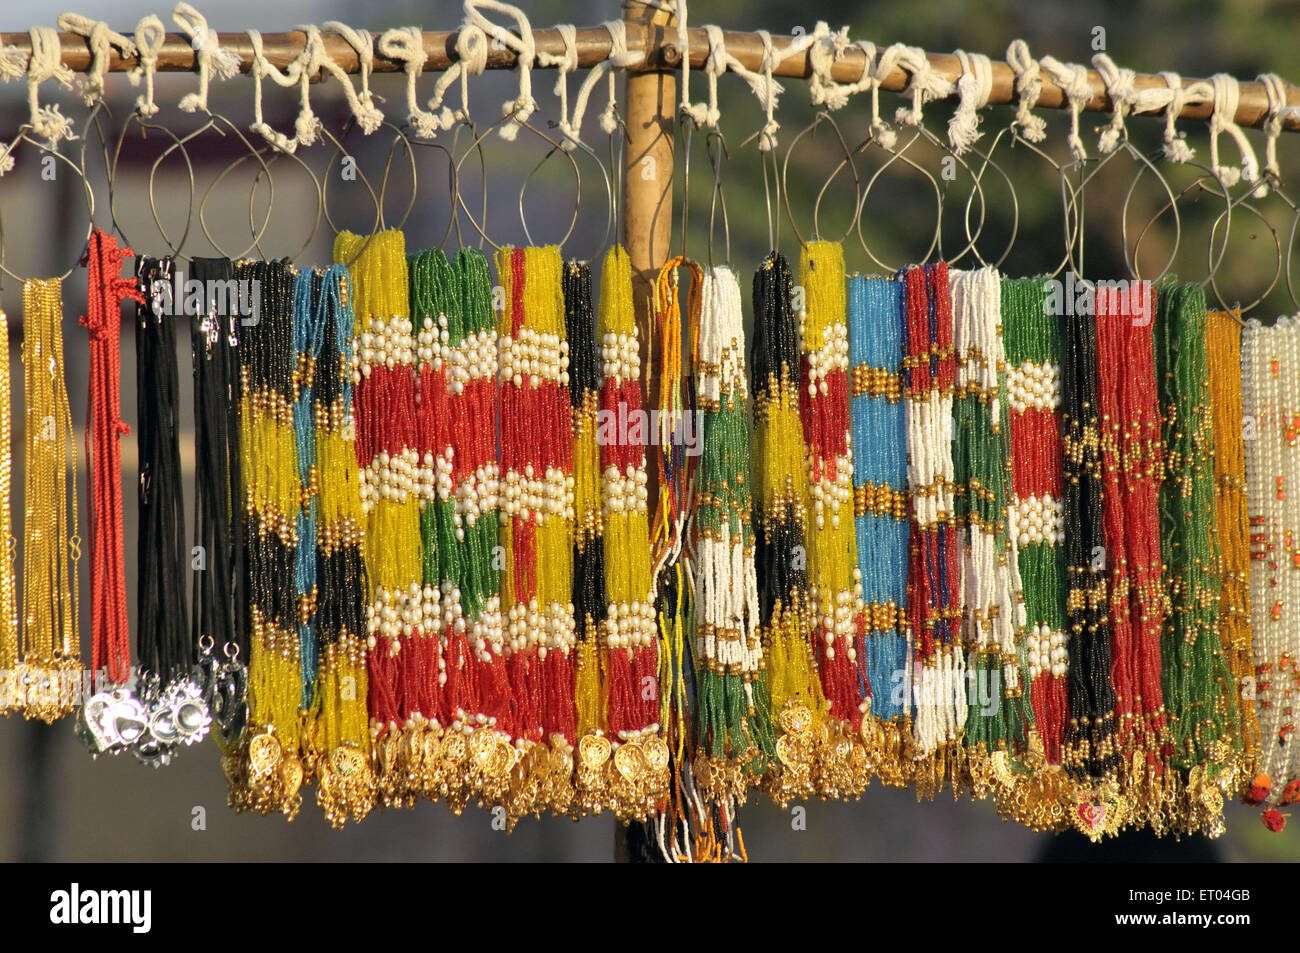 Cheap imitation Jewellery in stall at Pushkar Rajasthan India - Stock Image